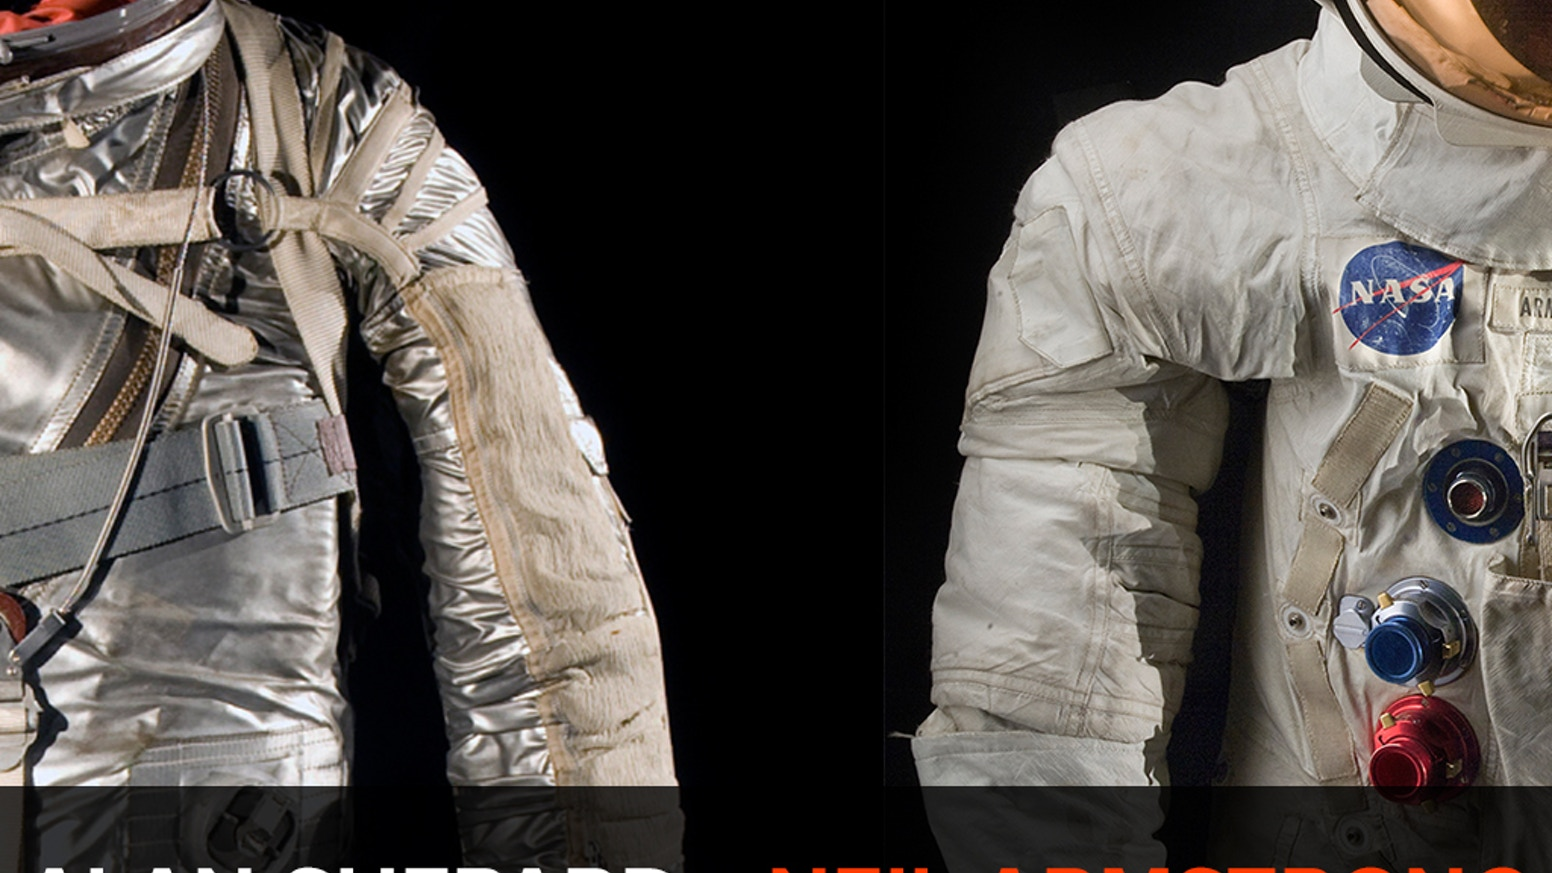 A community of backers around the world came together to help the Smithsonian conserve, digitize, and display Neil Armstrong's and Alan Shepard's spacesuits.